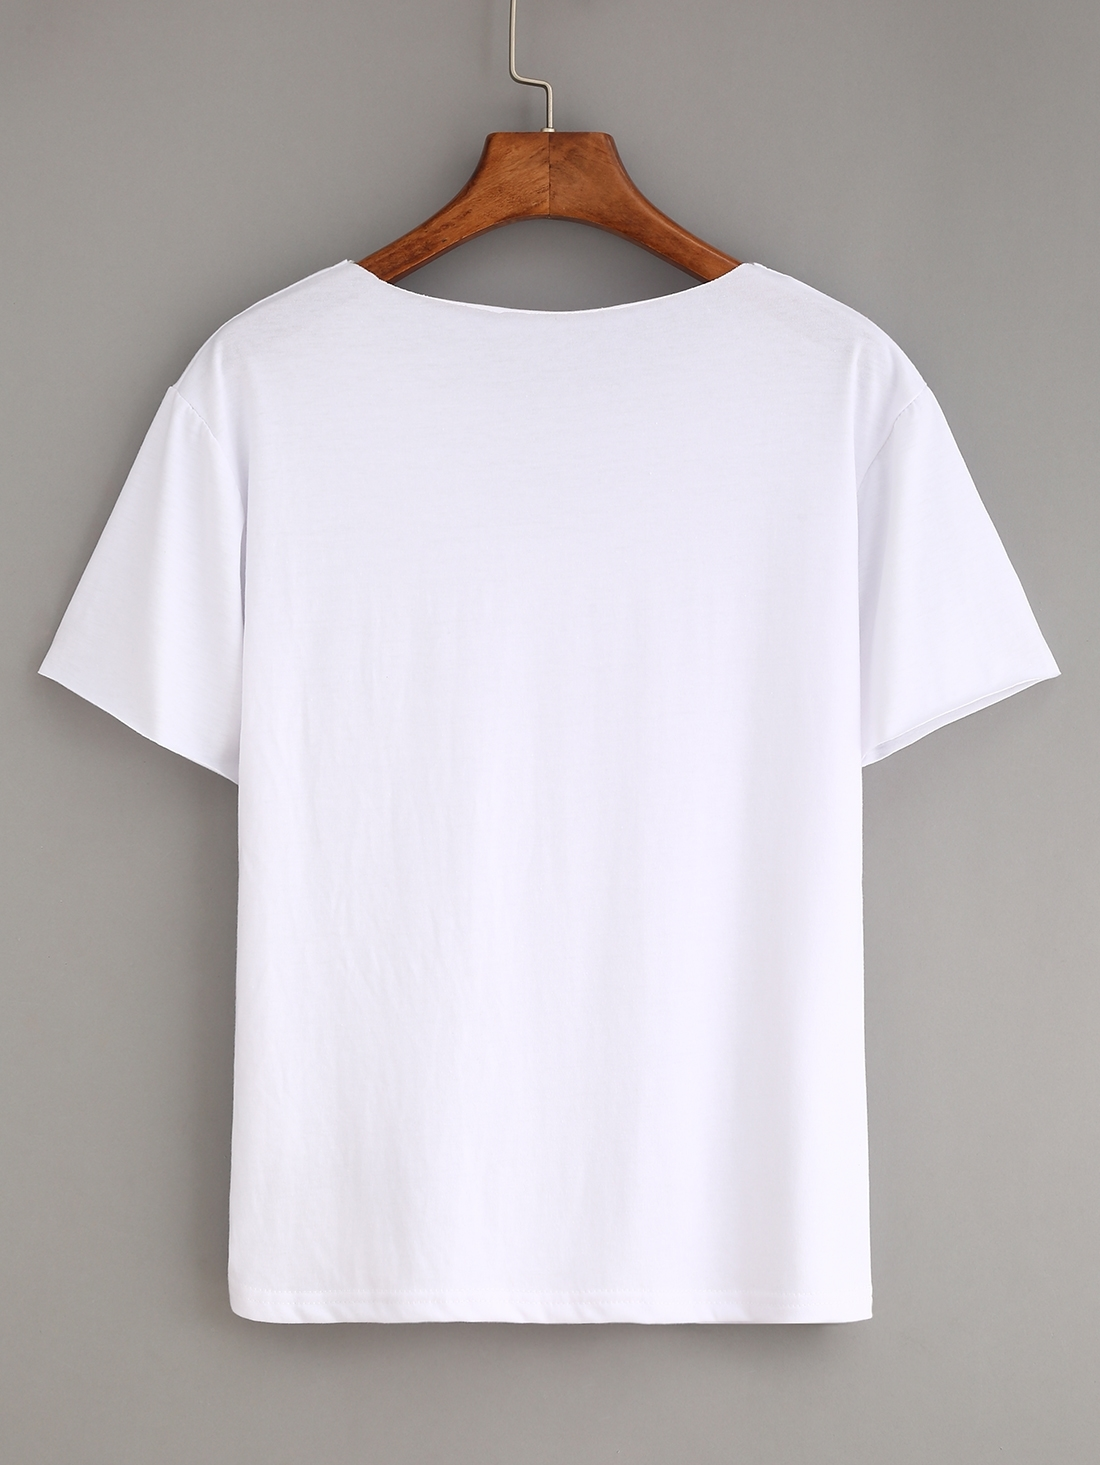 Plain White T Shirts